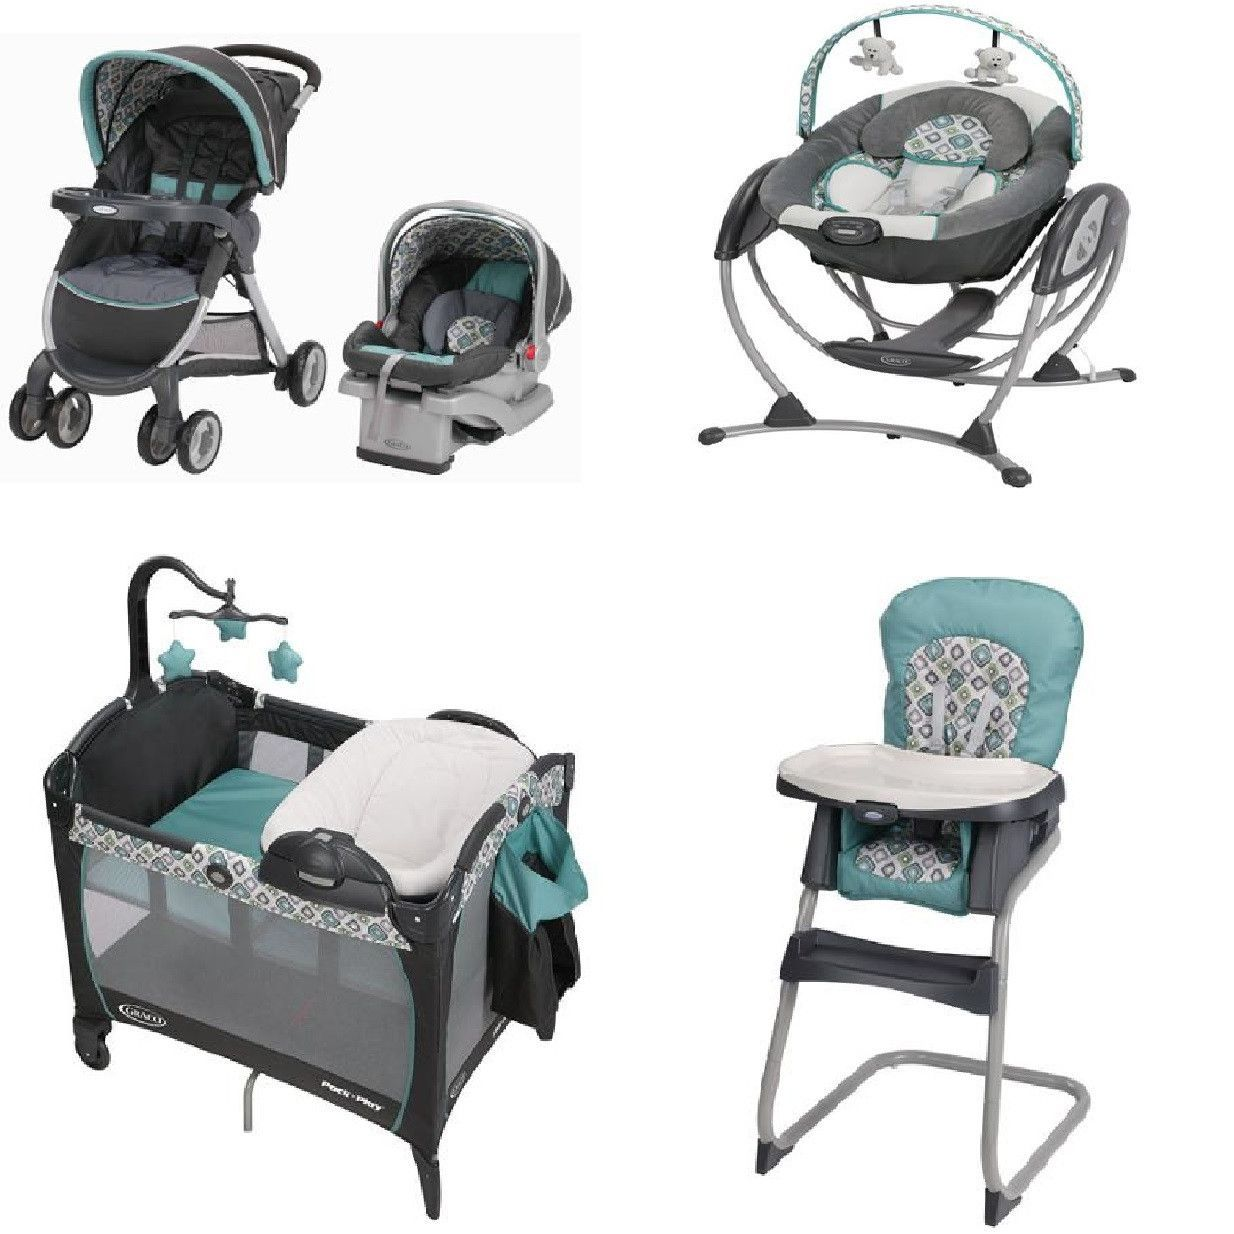 Graco high chair pink and brown - Graco Affinia Blue Complete Baby Gear Bundle Stroller Travel System Play Yard Swing